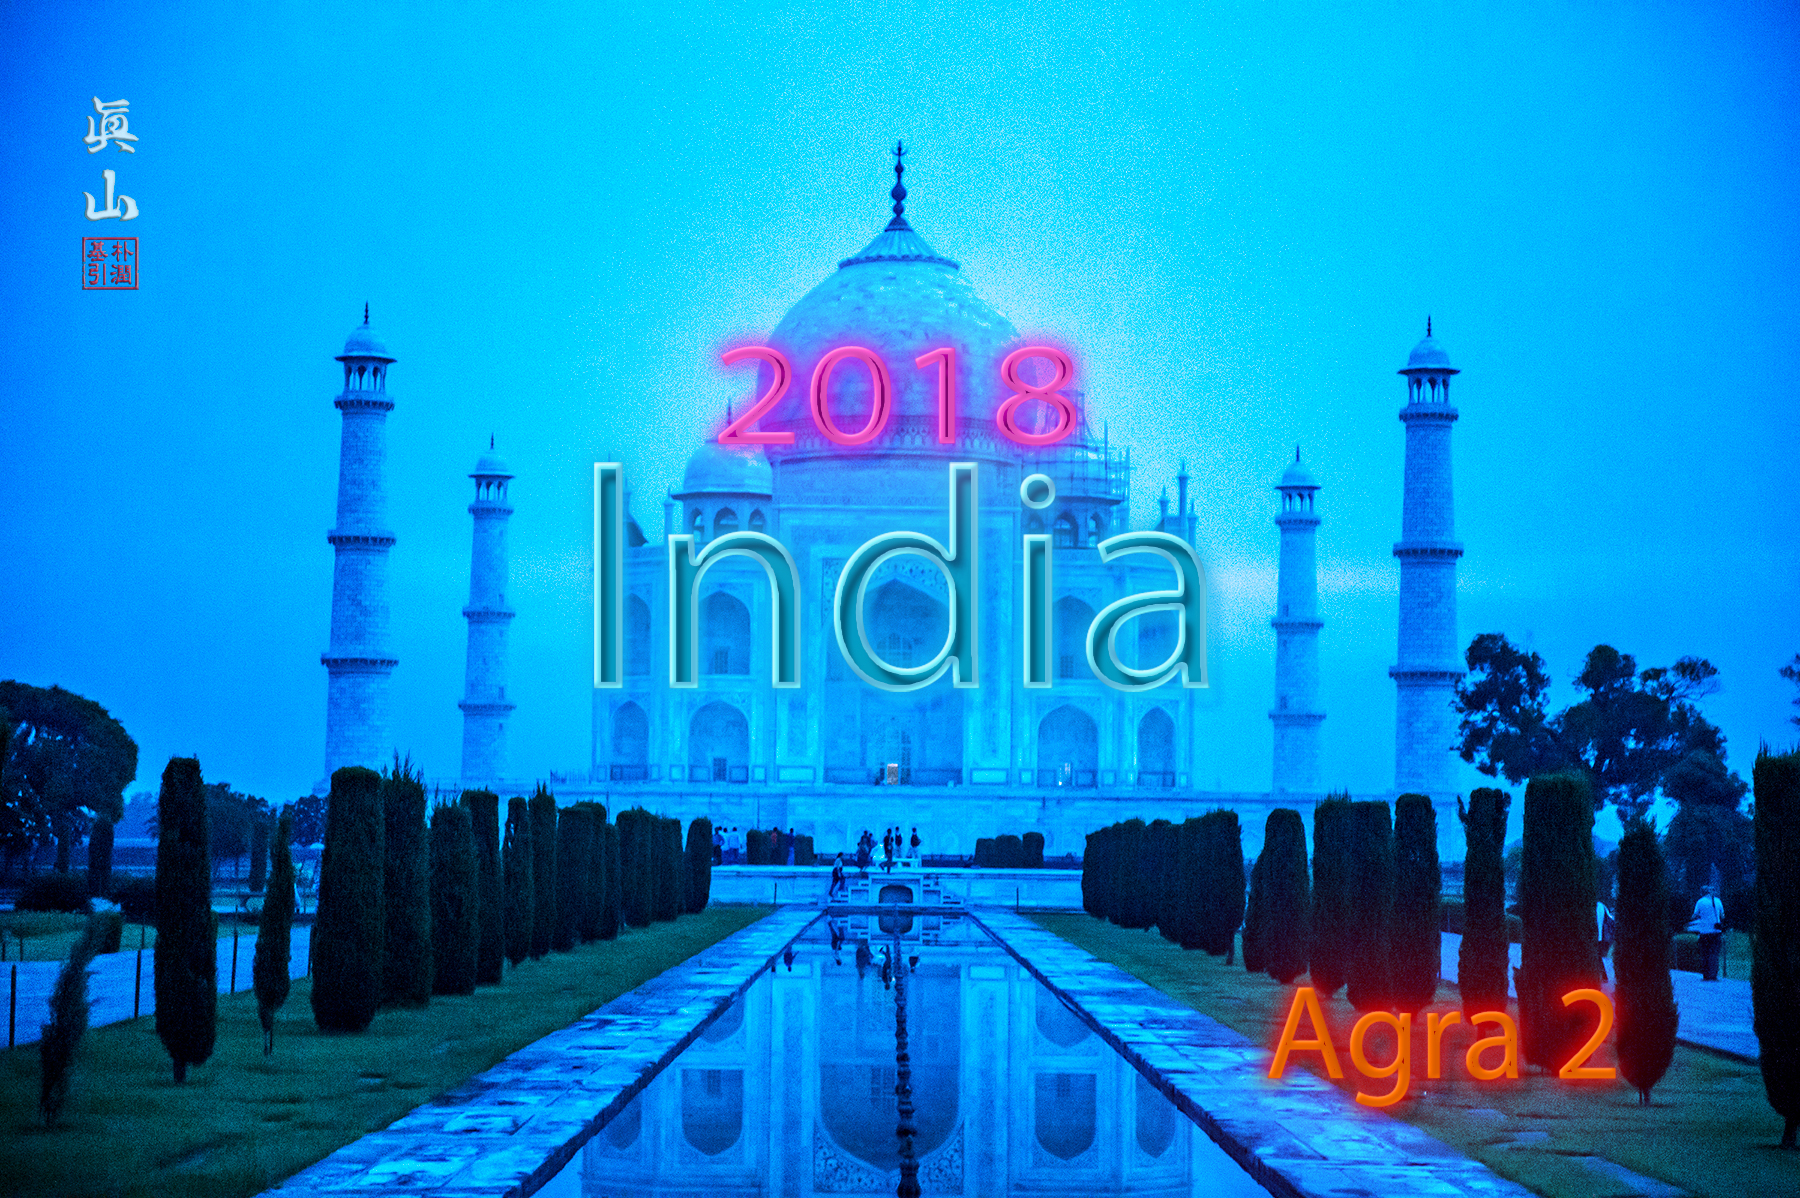 2018 India Tour - Agra 2, 6th day